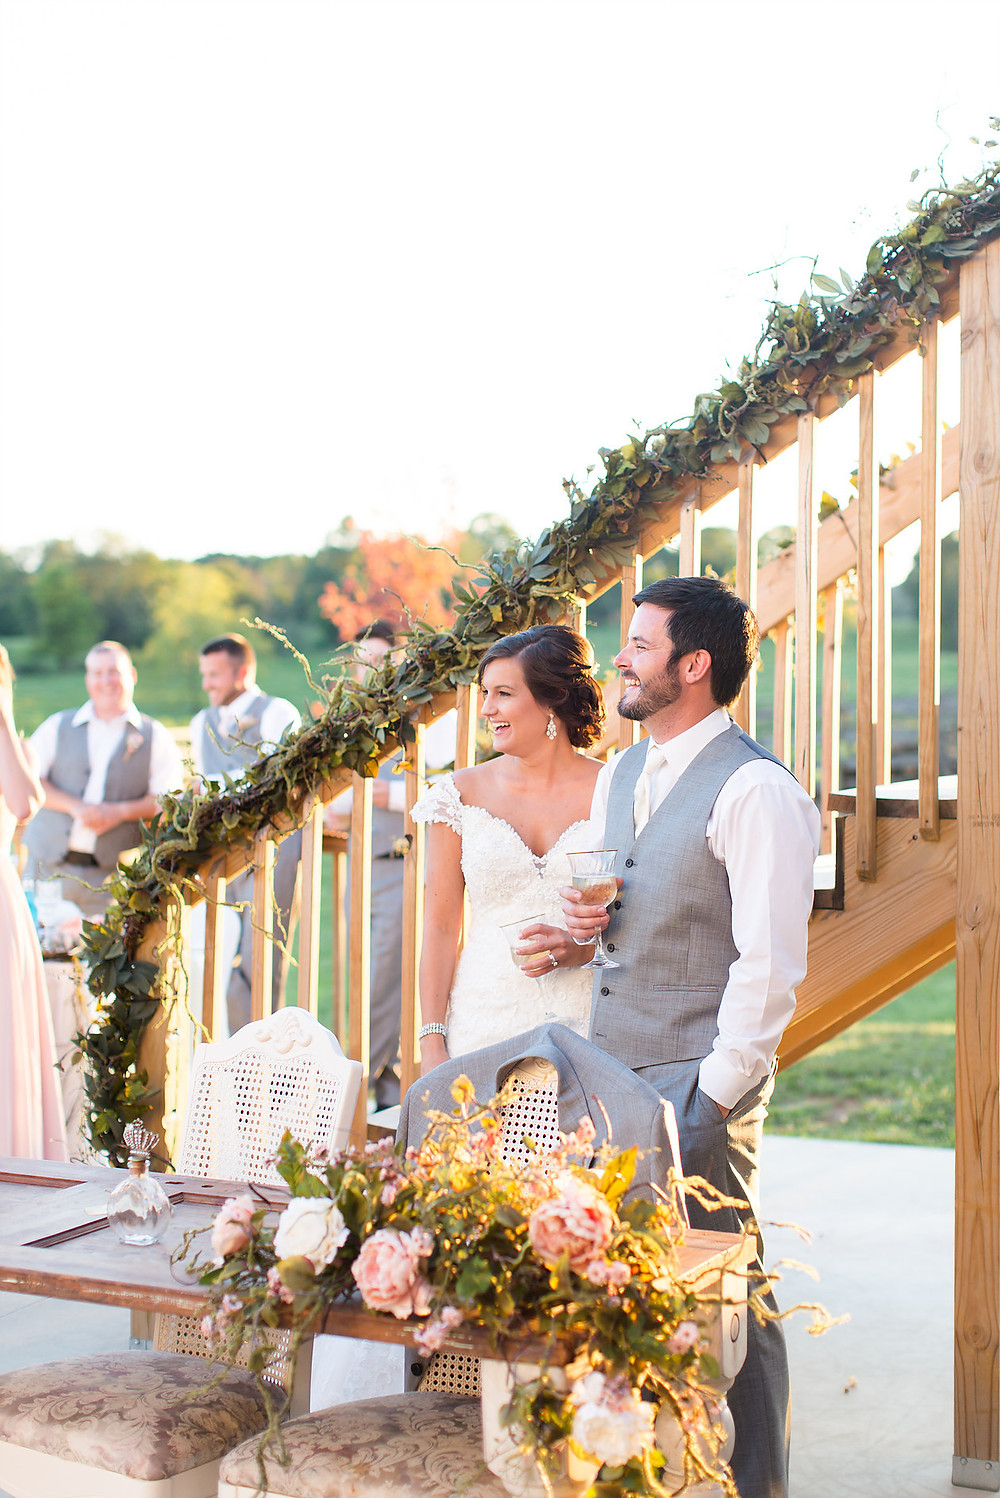 Wedding-Photography-Tips-for-Brides